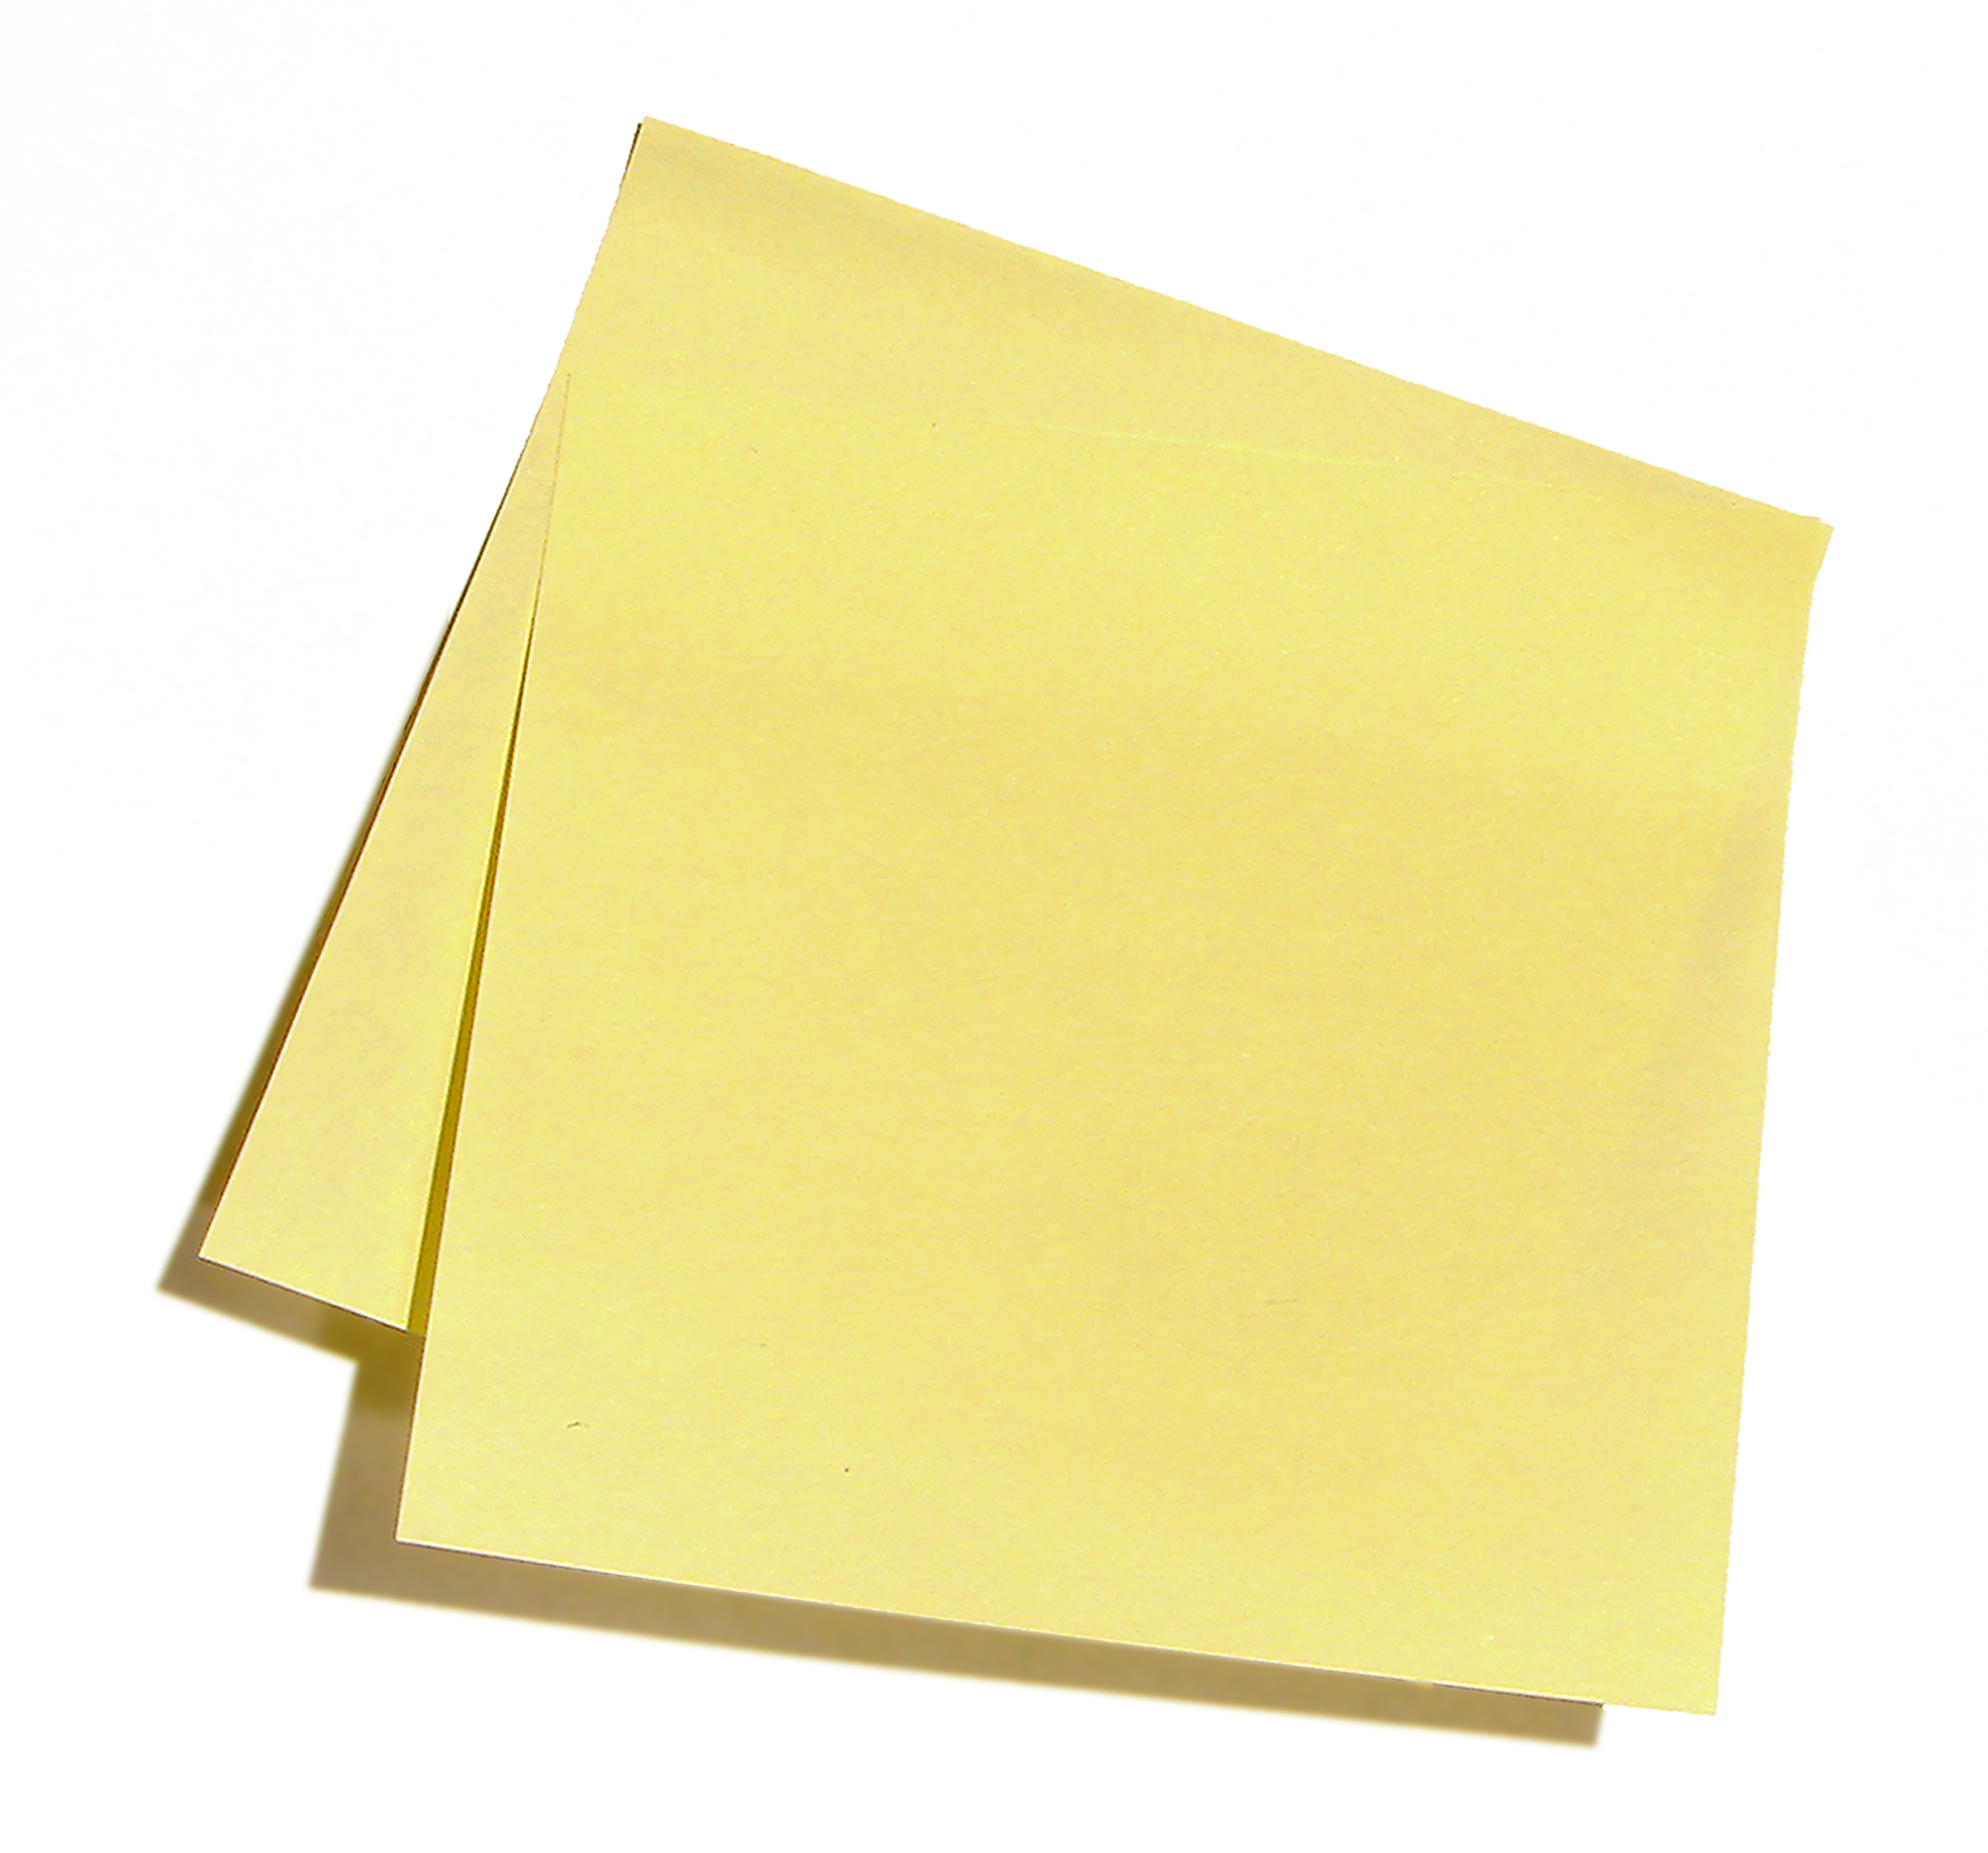 Post-it - Cliparts.co